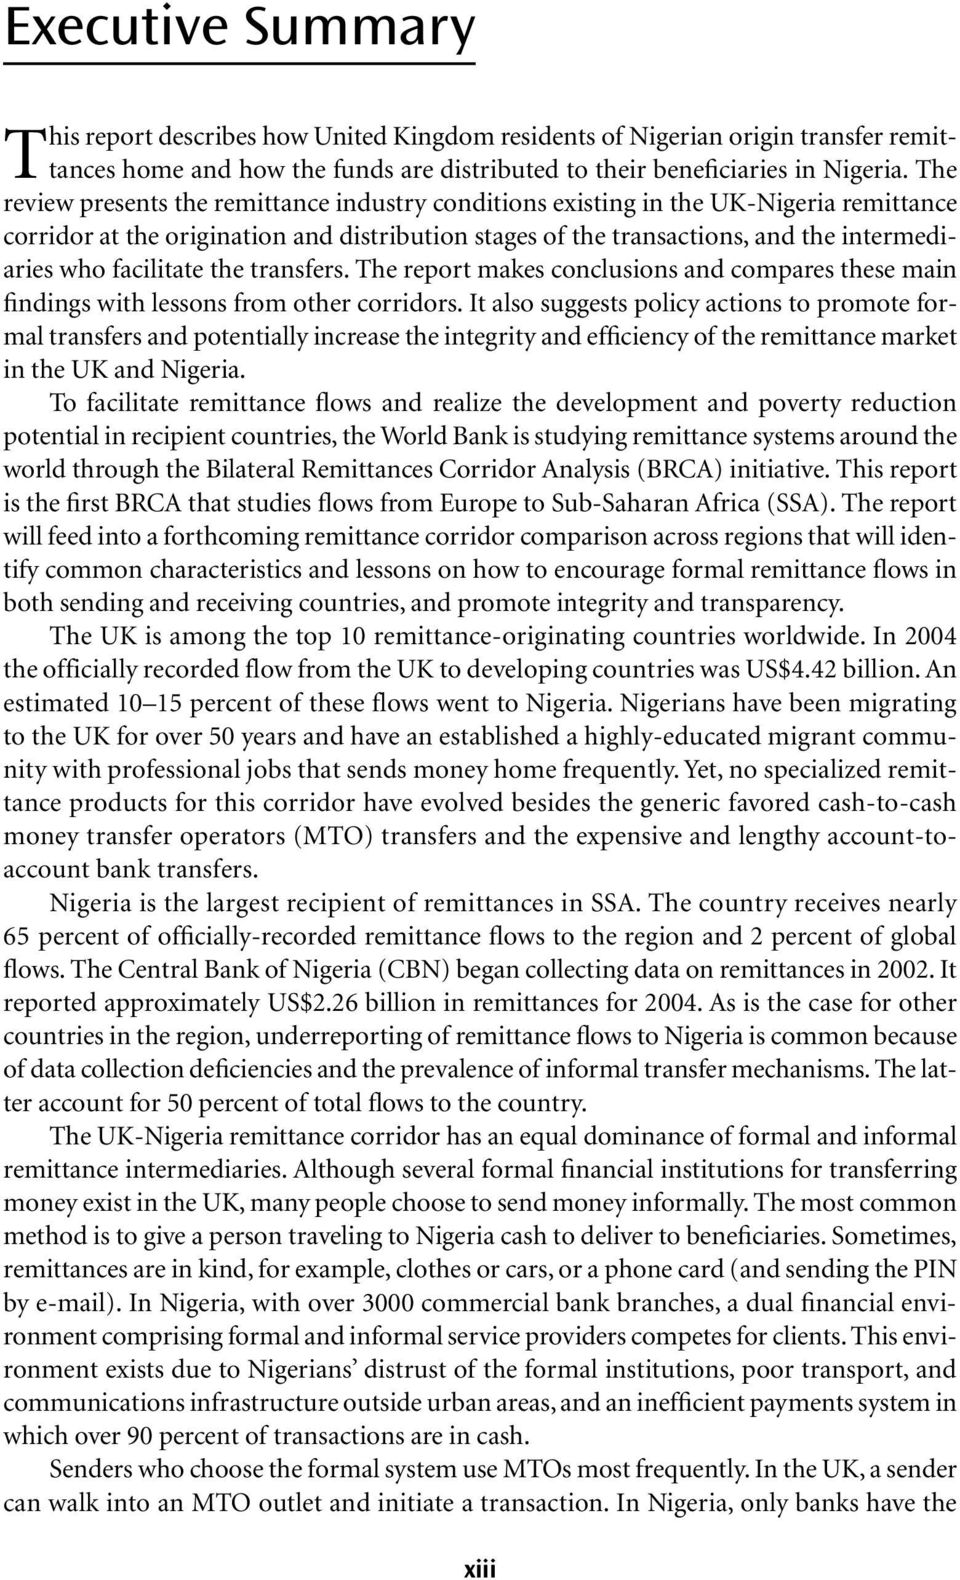 The UK-Nigeria Remittance Corridor Challenges of Embracing